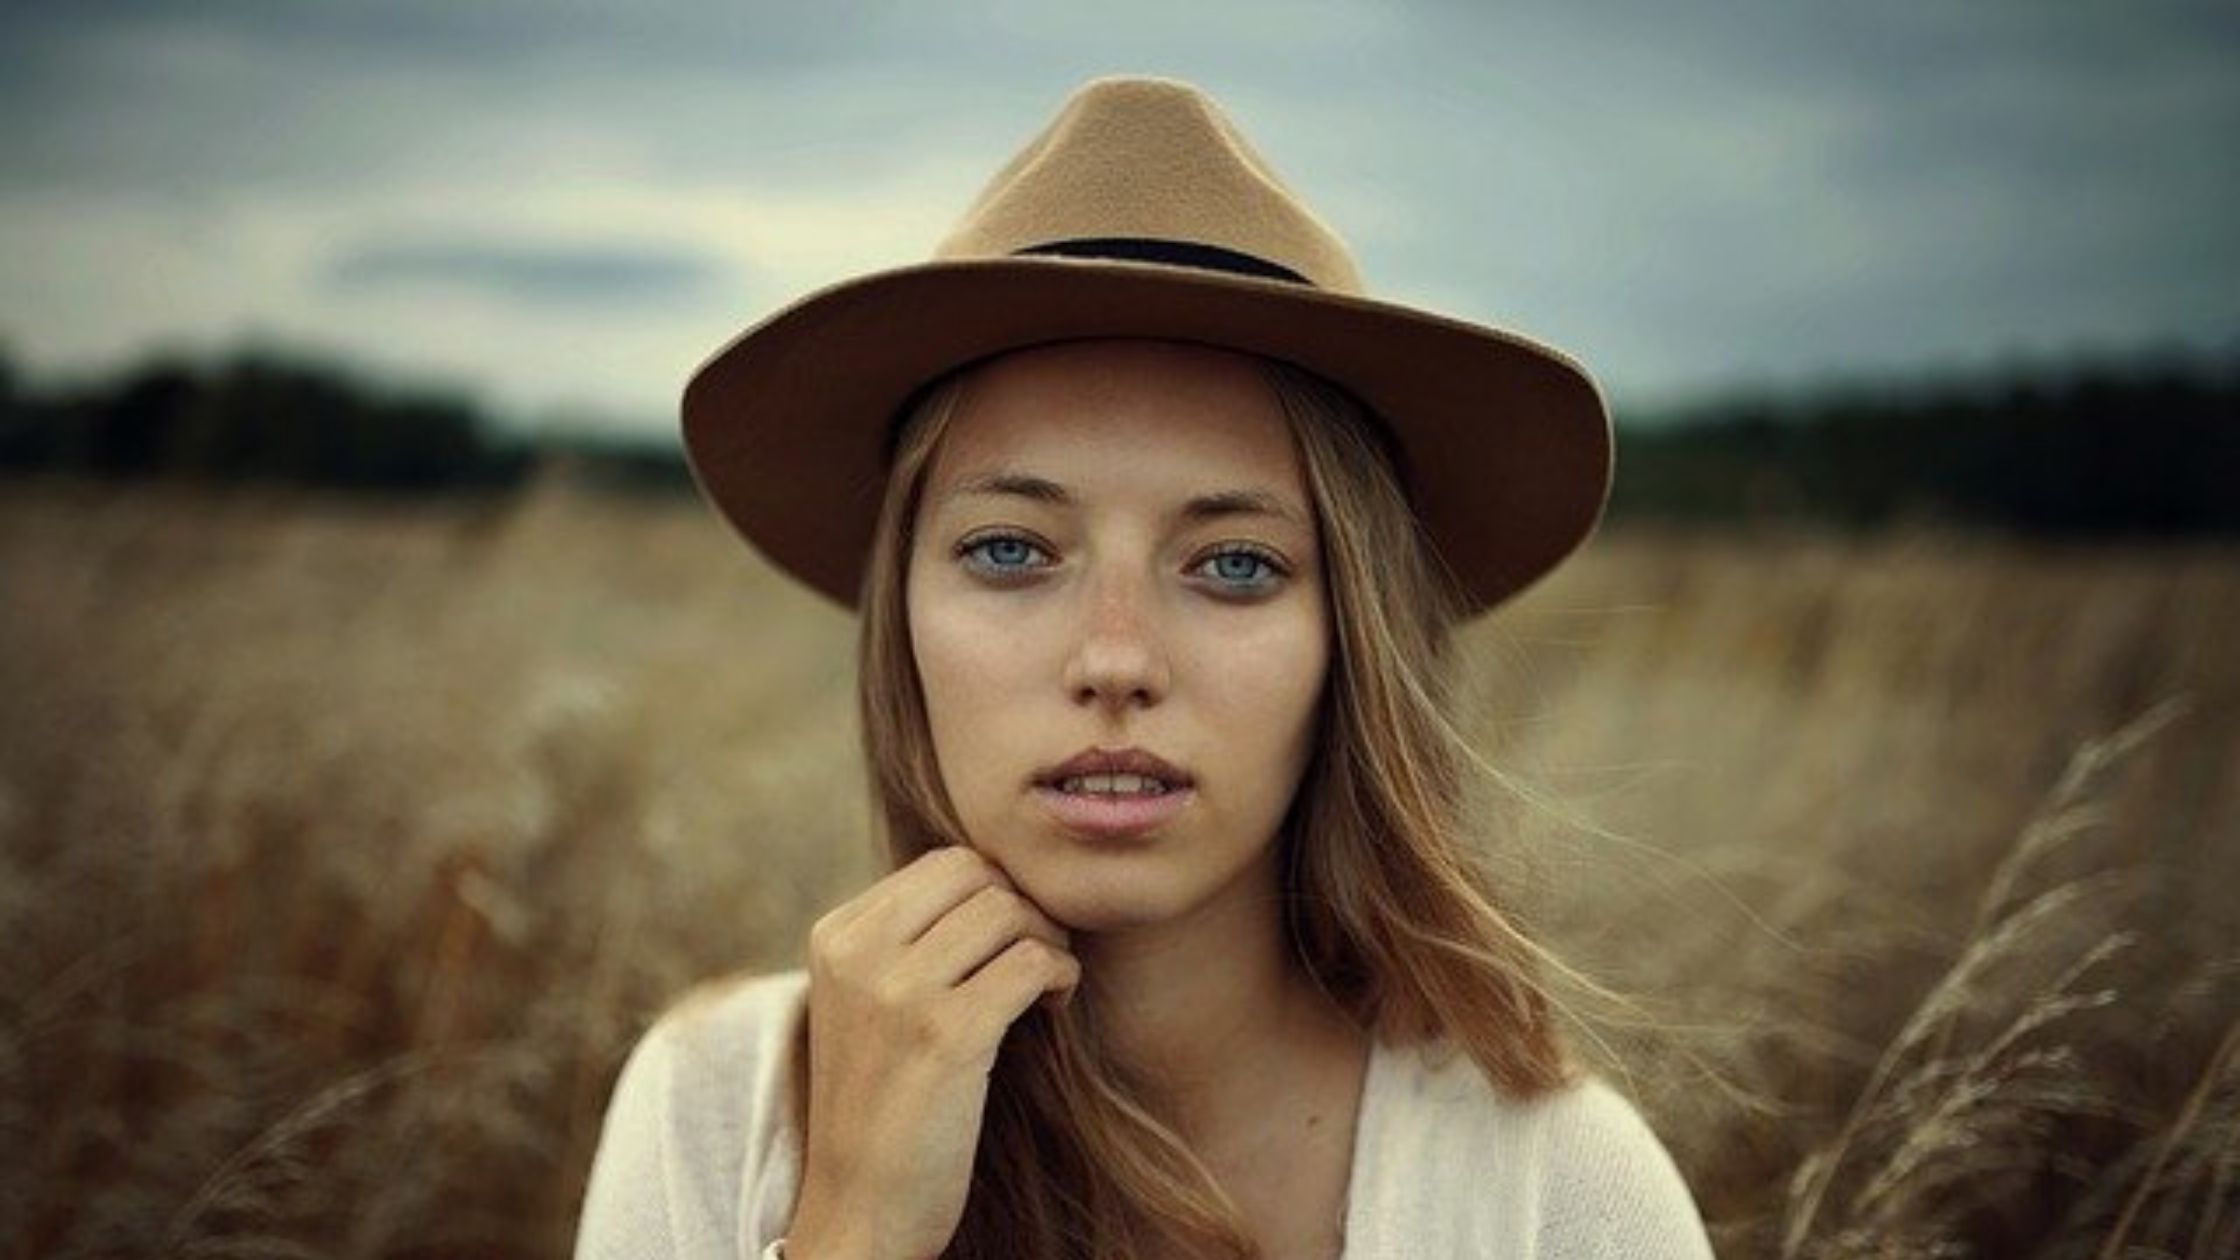 5 leather hat styles to try on your next outback adventure